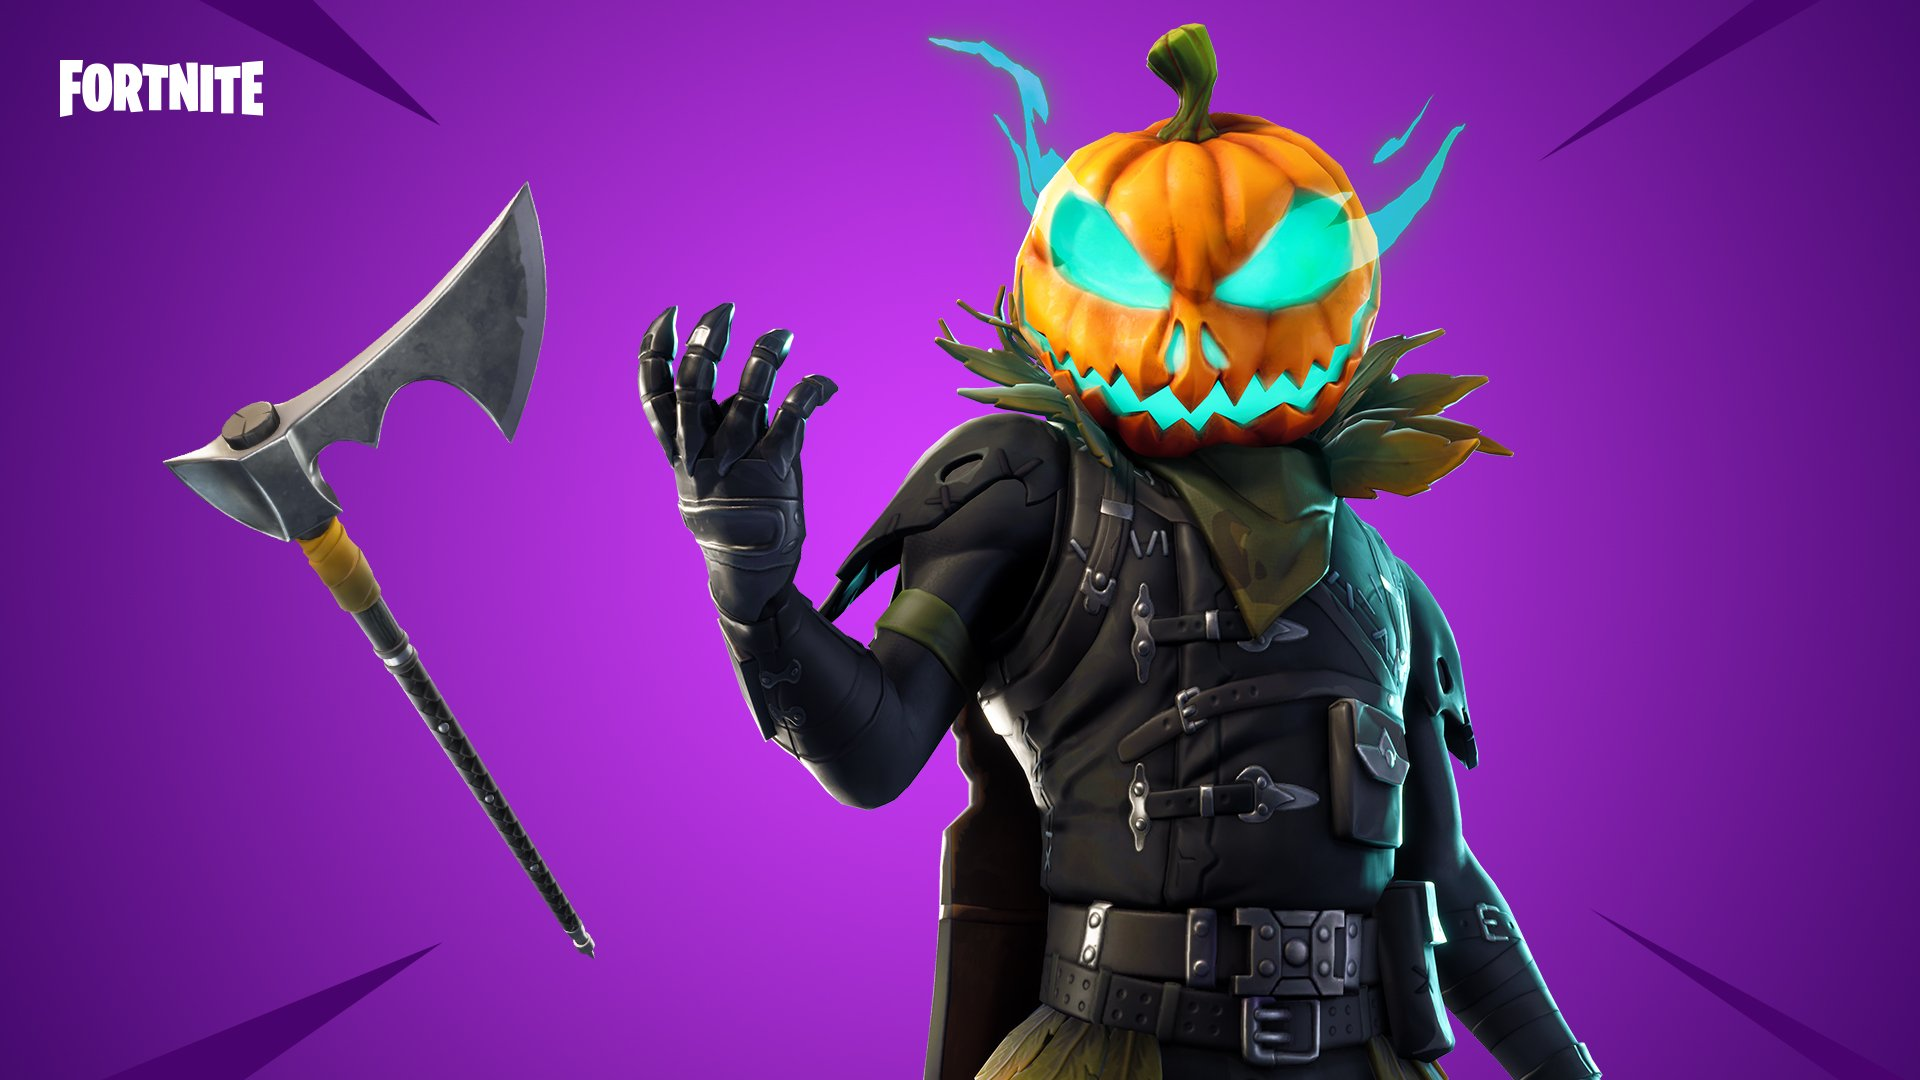 Fortnite Hollowhead Outfits Fortnite Skins